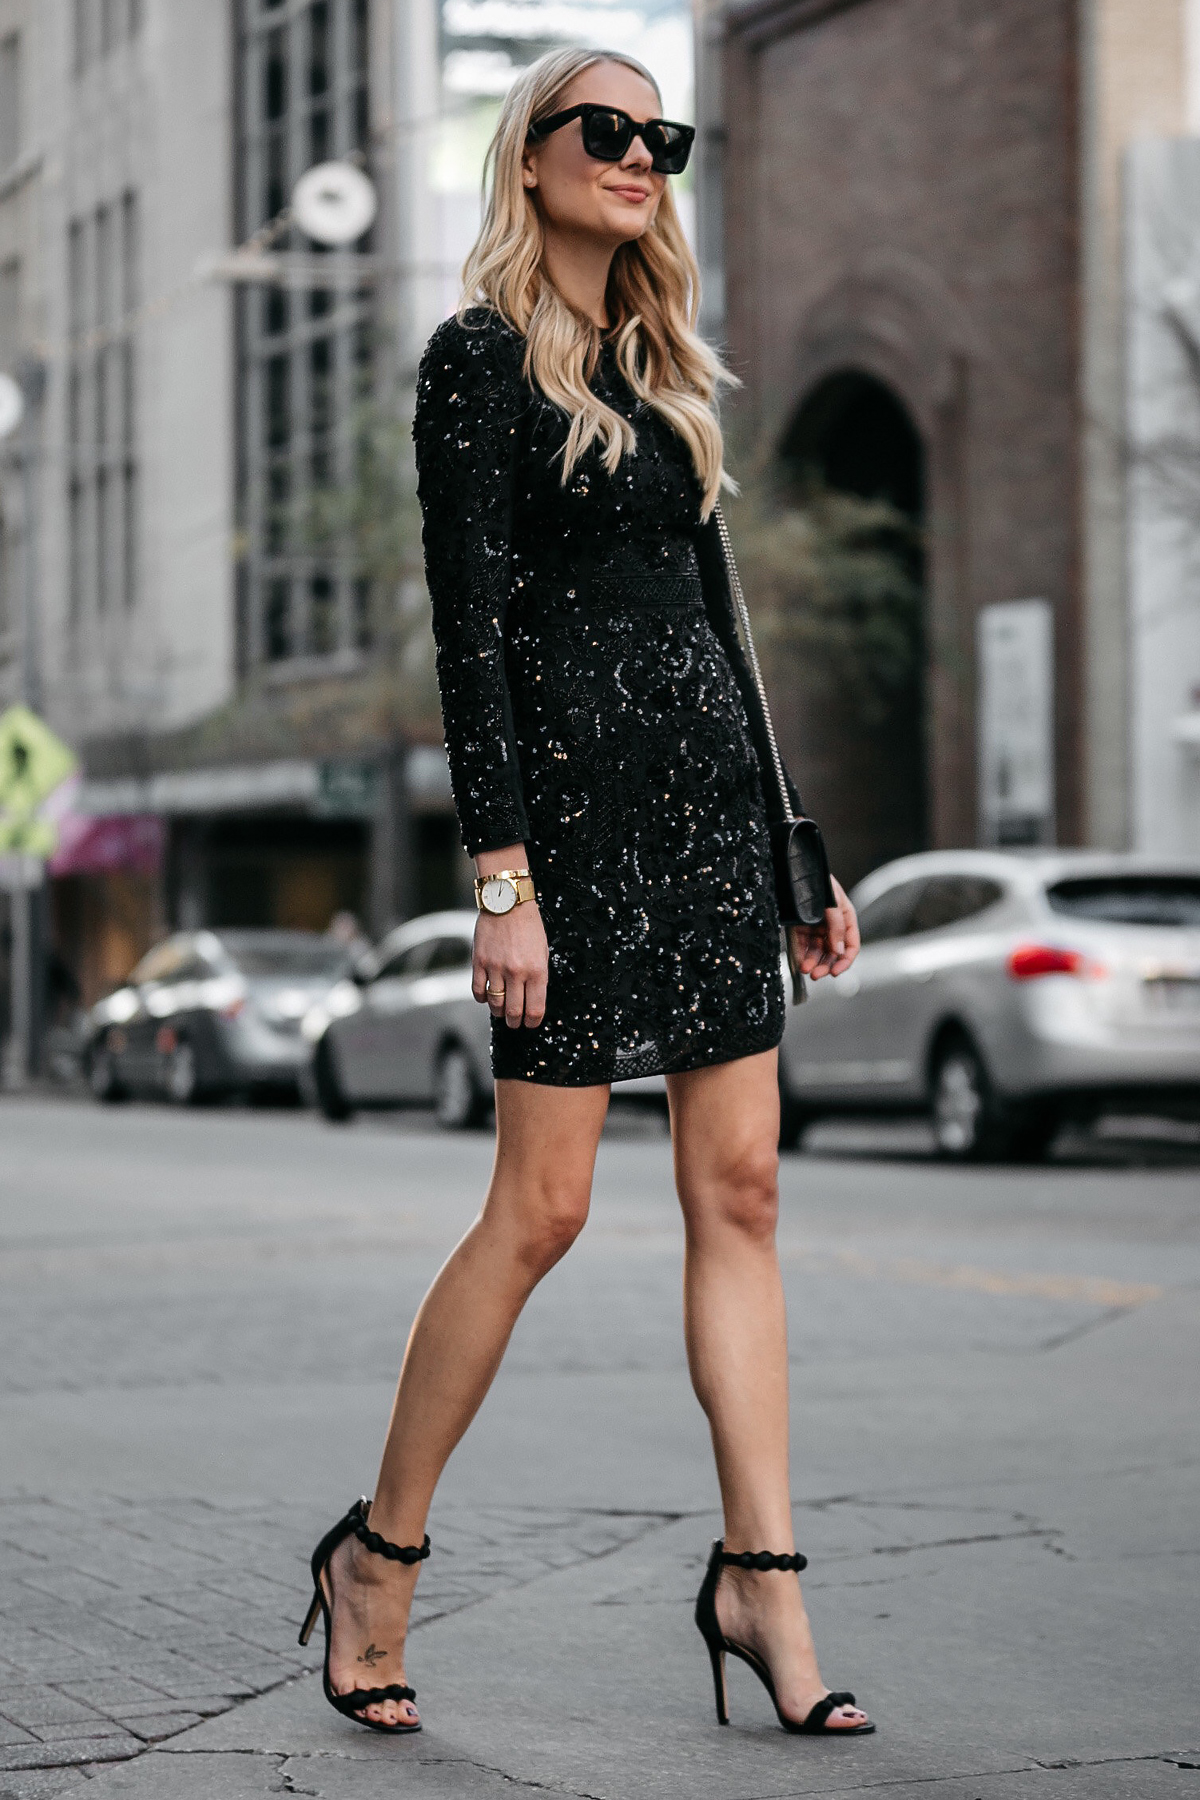 Blonde Woman Wearing Long Sleeve Black Sequin Dress Needle and Thread Black Ankle Strap Heels Fashion Jackson Dallas Blogger Fashion Blogger Street Style NYE Outfit